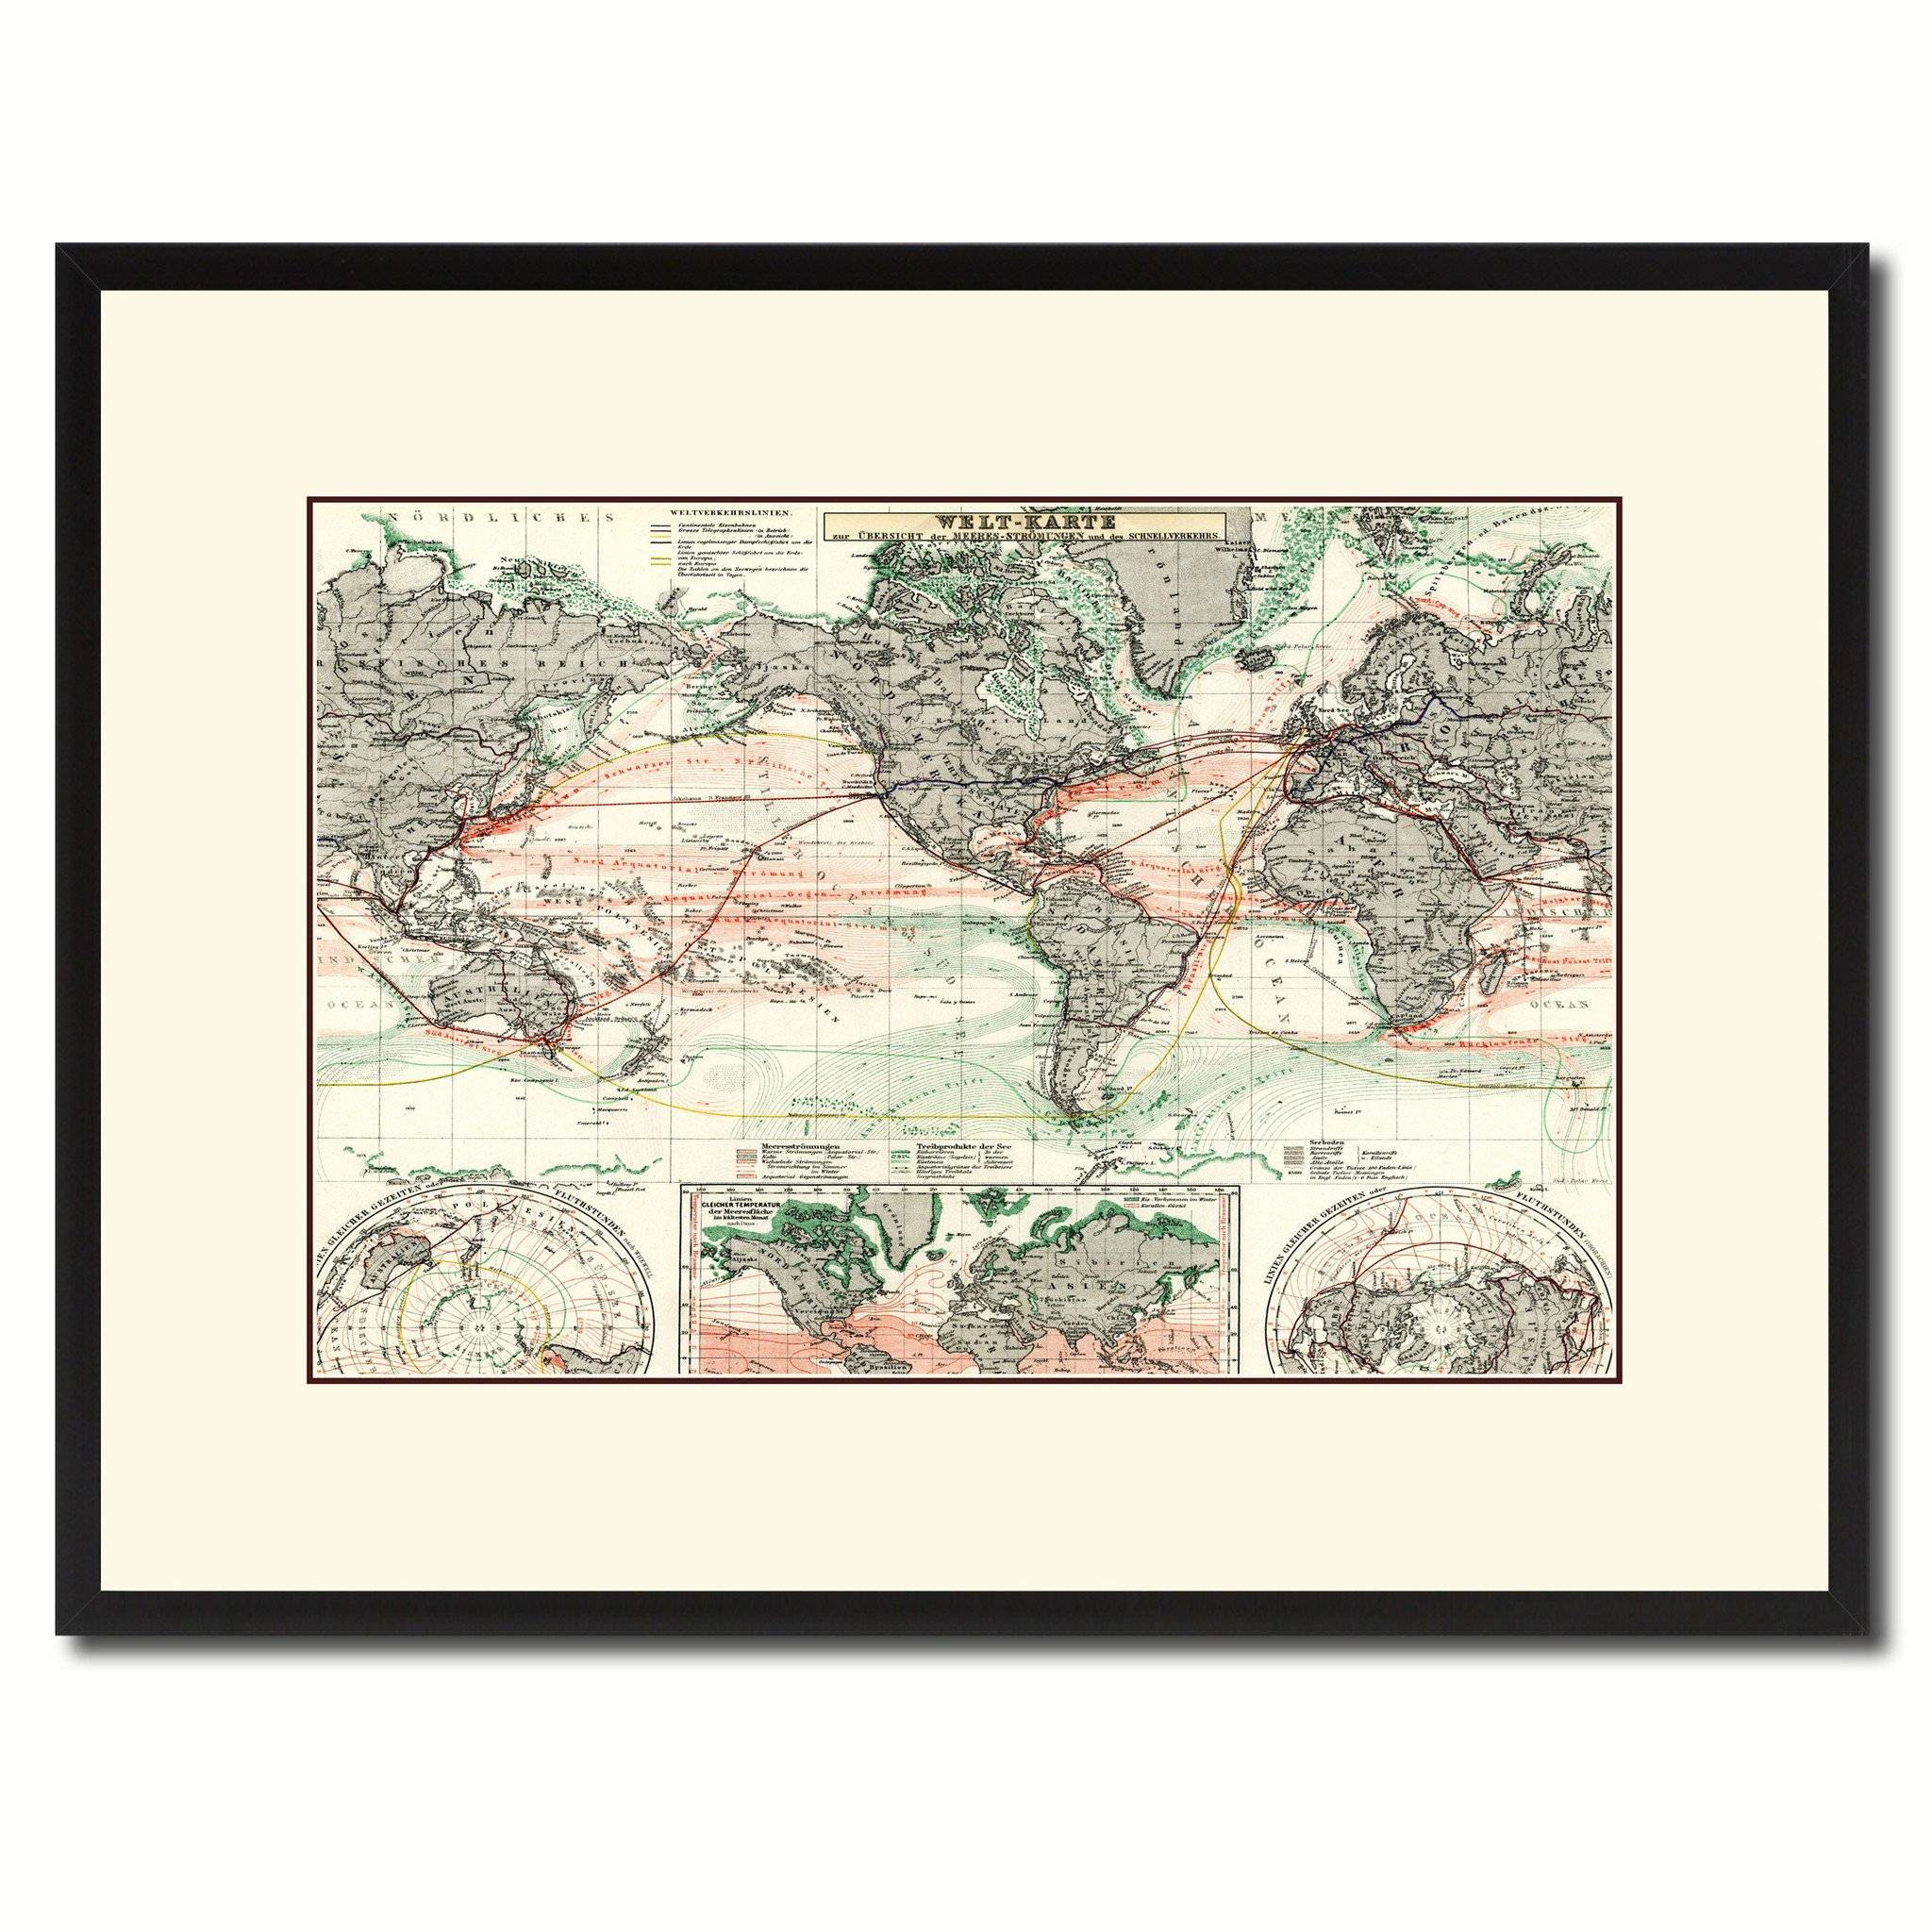 World Ocean Currents Vintage Antique Map Wall Art Home Decor Gift With Most Recent Map Wall Art (View 12 of 25)